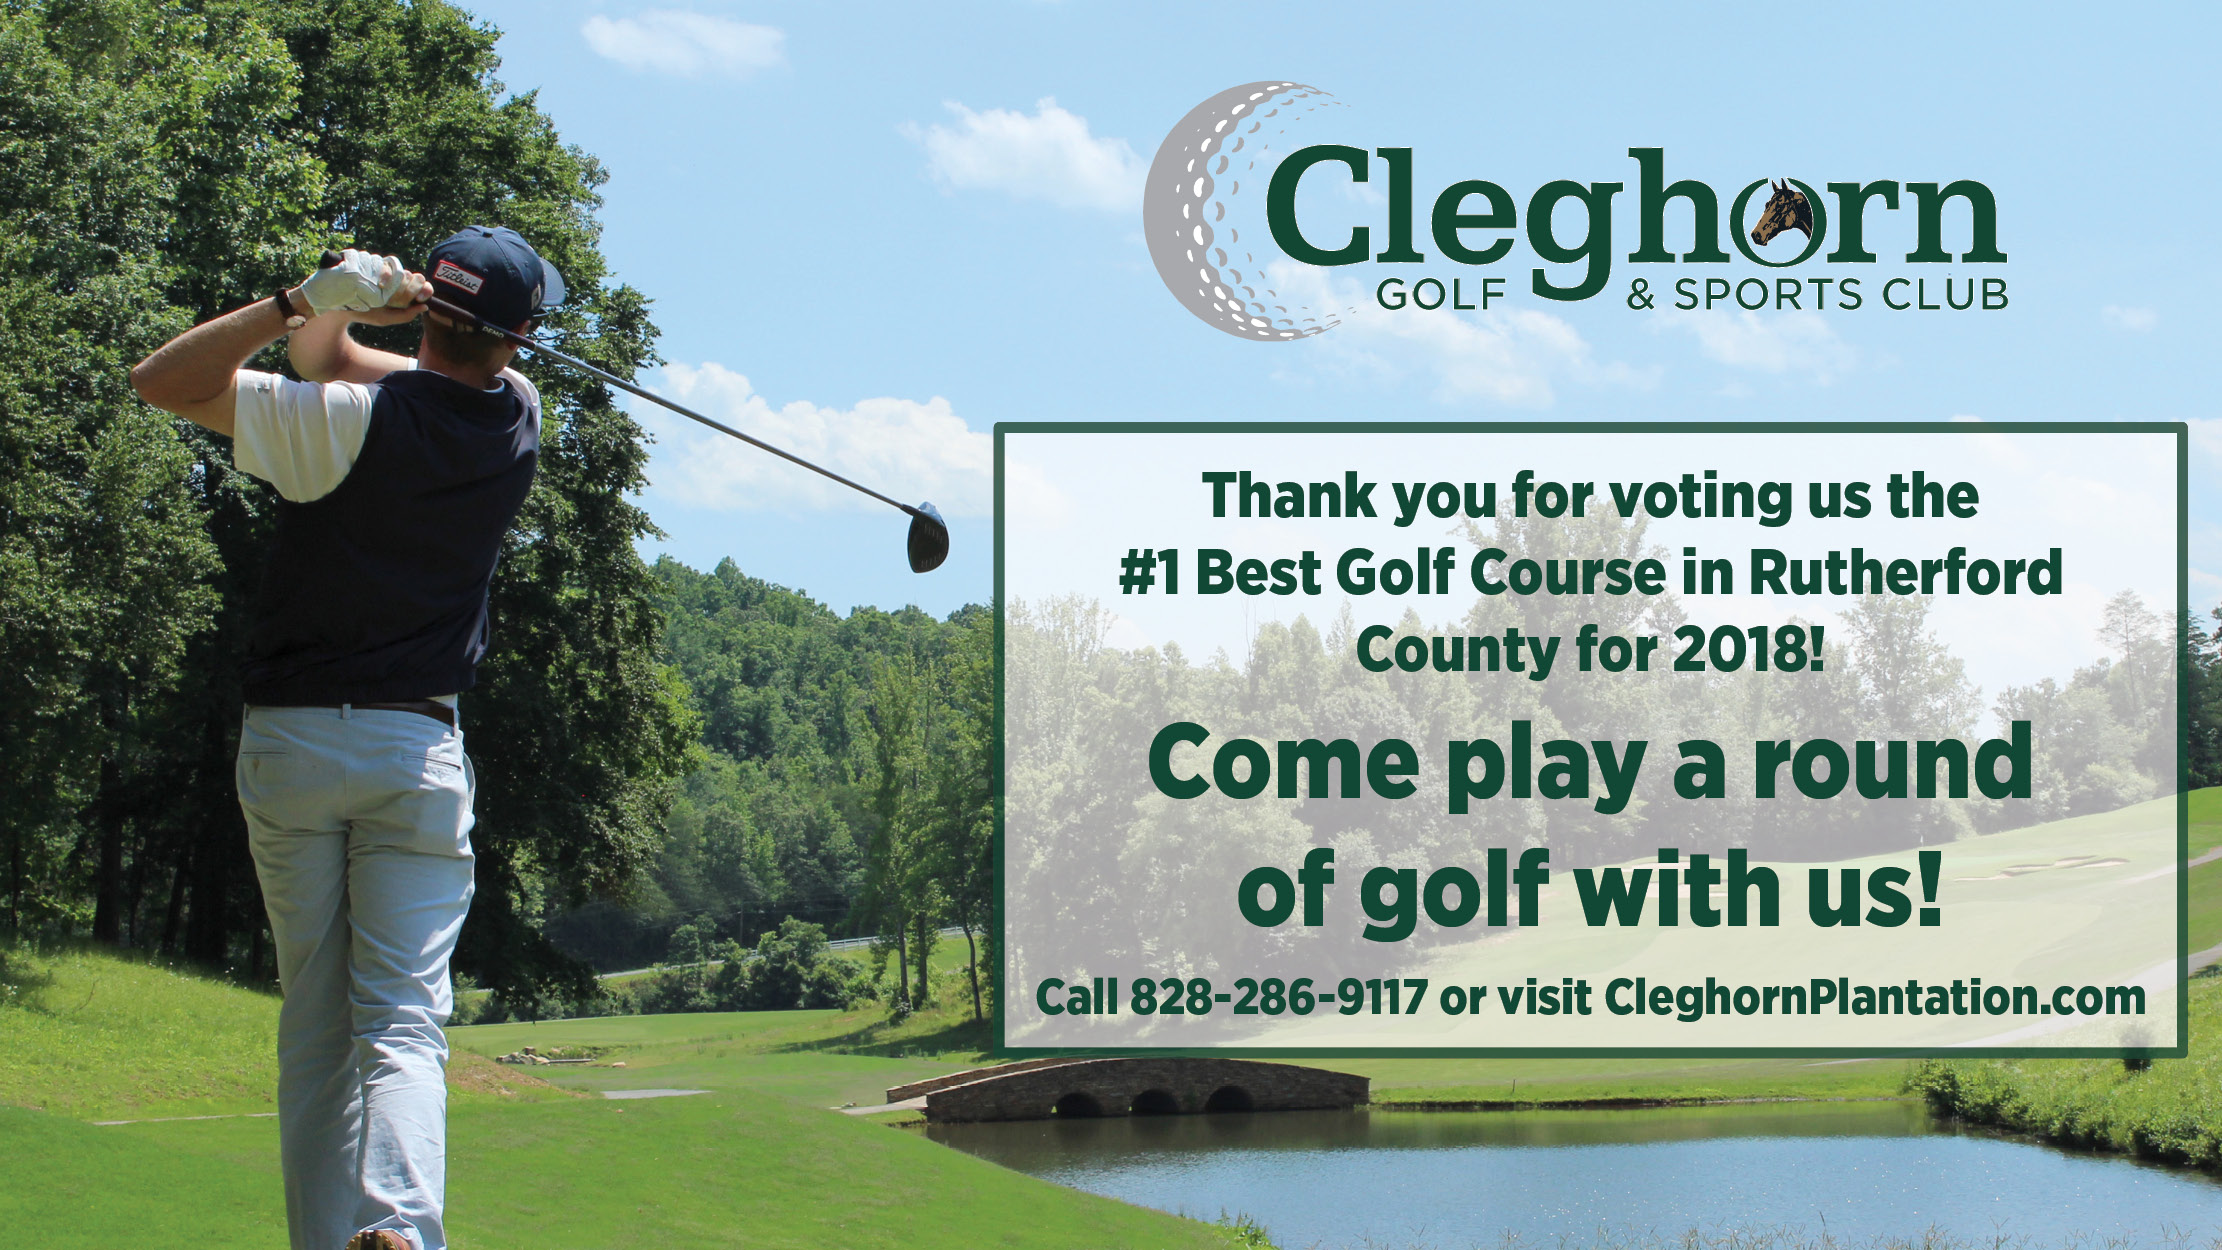 Cleghorn Golf & Sports Club Voted the #1 Best Golf Course in Rutherford County for 2018!